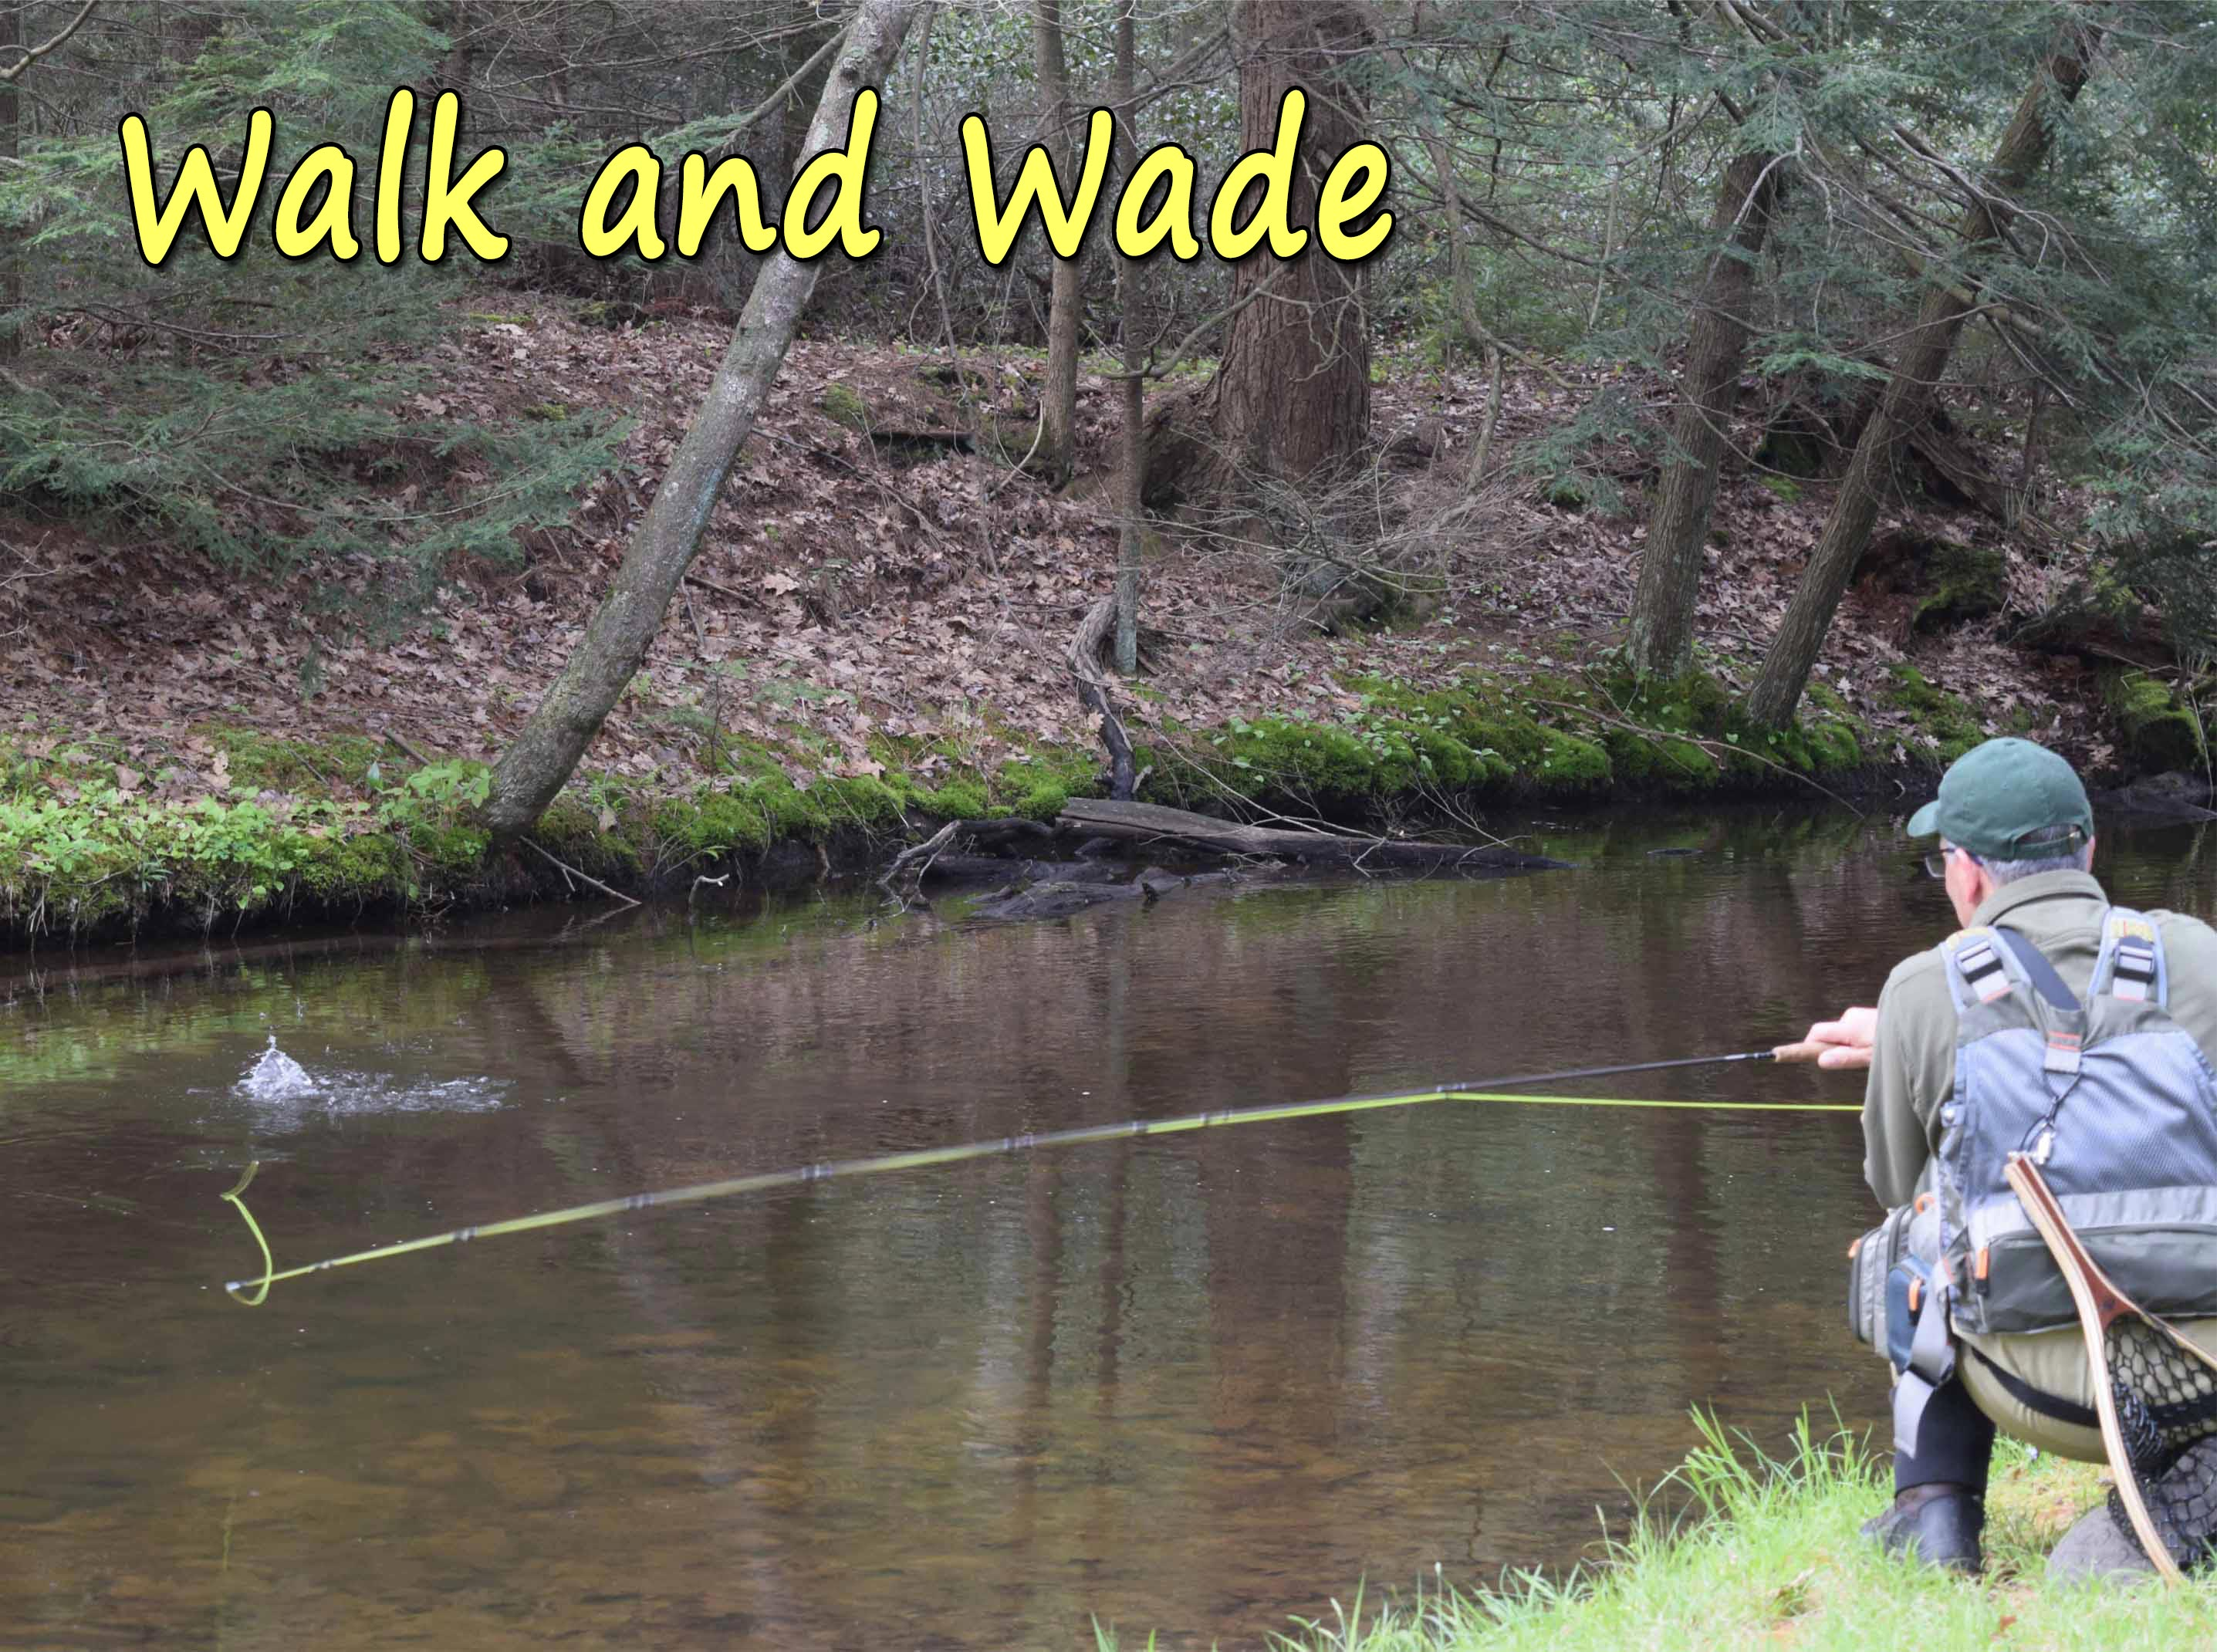 Walk and Wade Day Trips on Penns, Spring, Pine, Kettle, Little Juniata, Lehigh, Tulpehocken, Manatawny, Pohopoco and Lackawanna just to name a few of the stream we guide on in PA